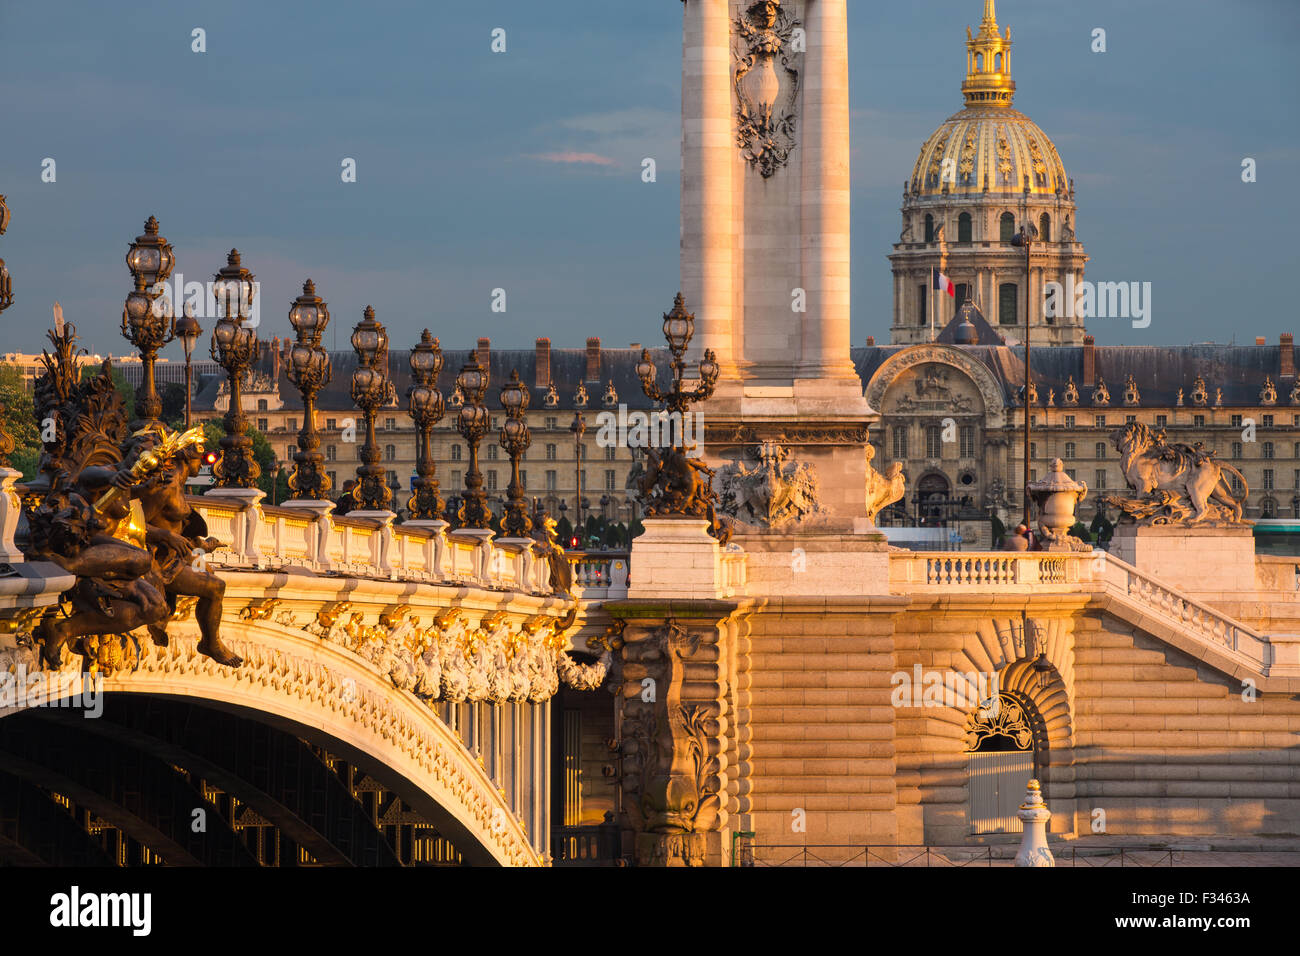 Pont Alexandre III, looking toward Les Invalides over the River Seine, Paris, France Stock Photo